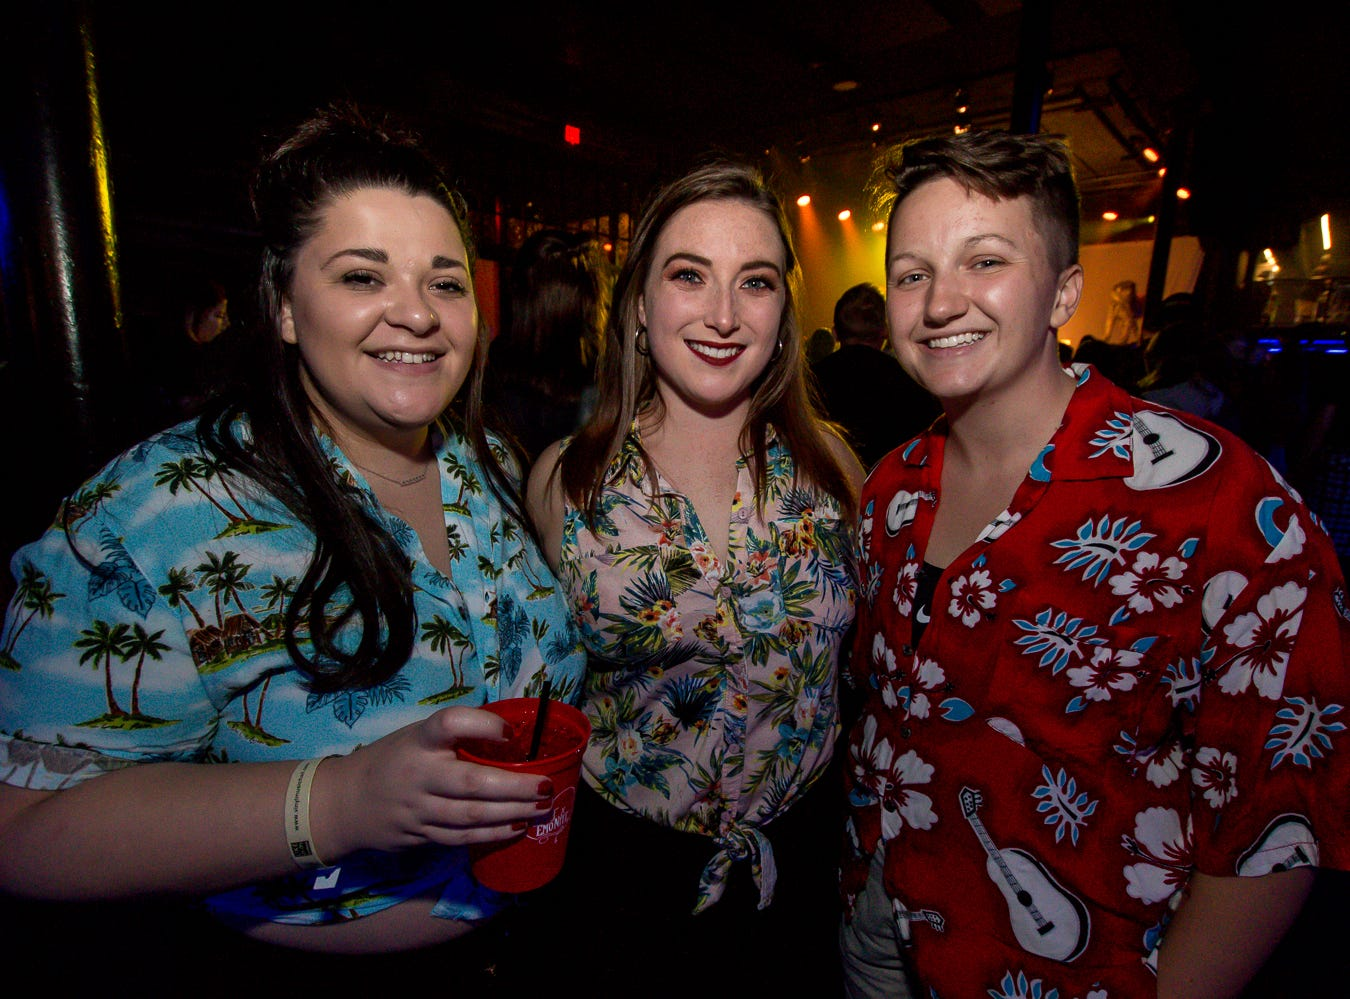 """At Vinyl Music Hall for 3OH!3's """"The Want House Party"""" tour stop at Vinyl Music Hall on Monday, November 19, 2018."""